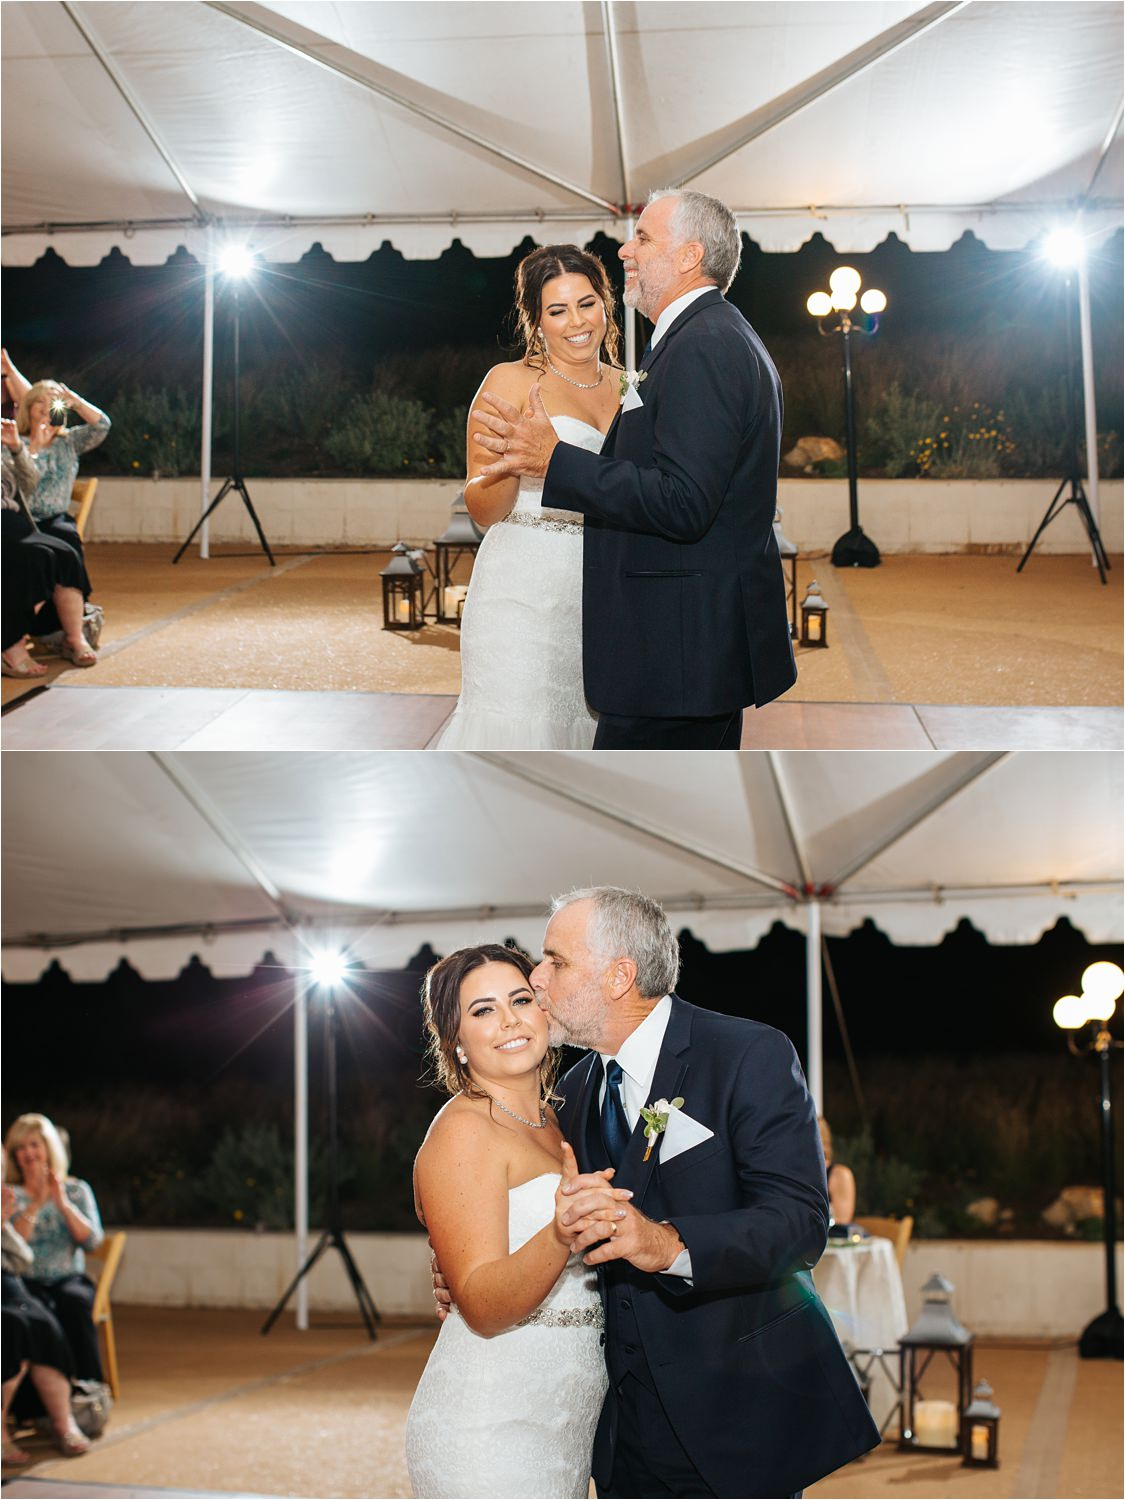 Father and Daughter dance during wedding reception - http://brittneyhannonphotography.com